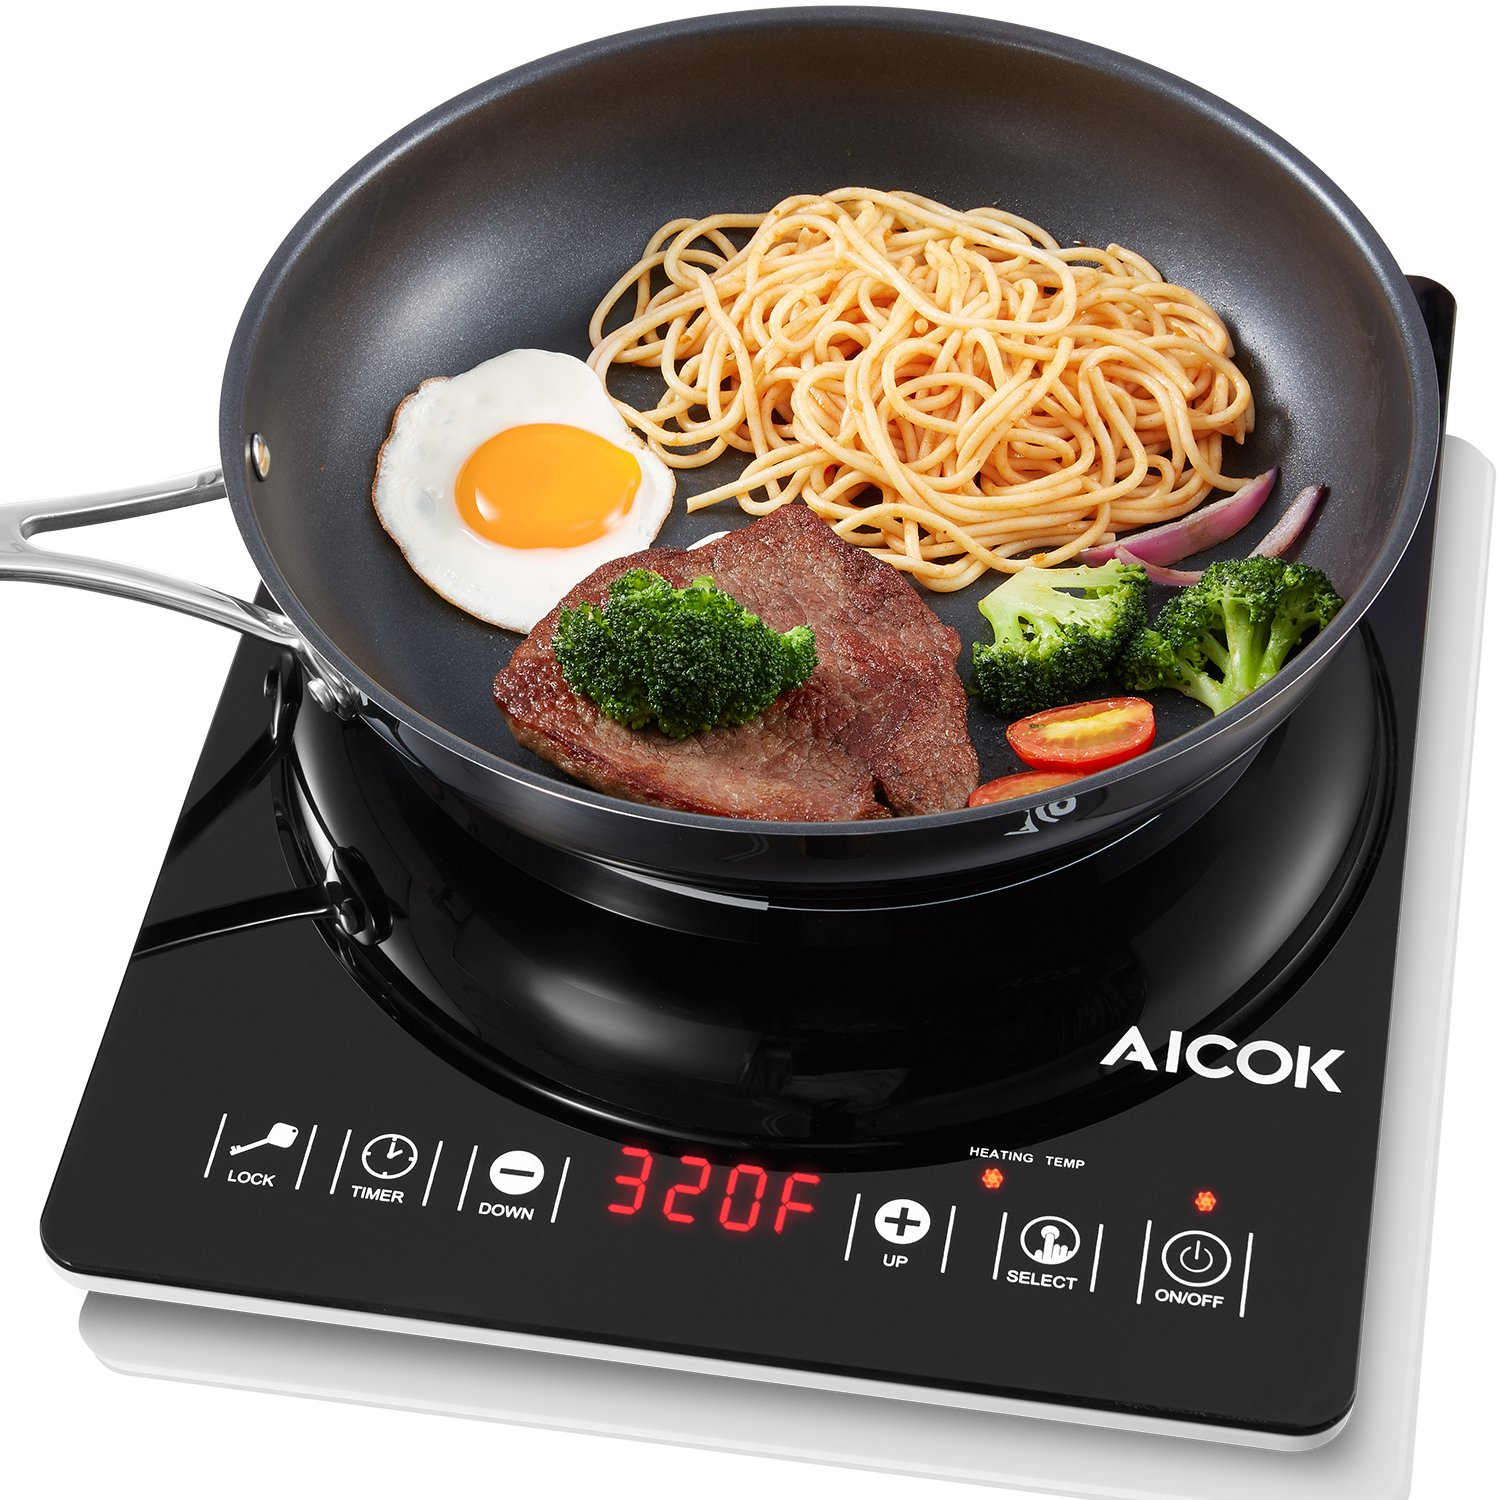 Aicok Portable Induction Cooktop, Sensor Electric Hot Plate with Ultra-Thin Design and Rapid Heat Technology, Digital Countertop Burner with Display Timer and Temperature